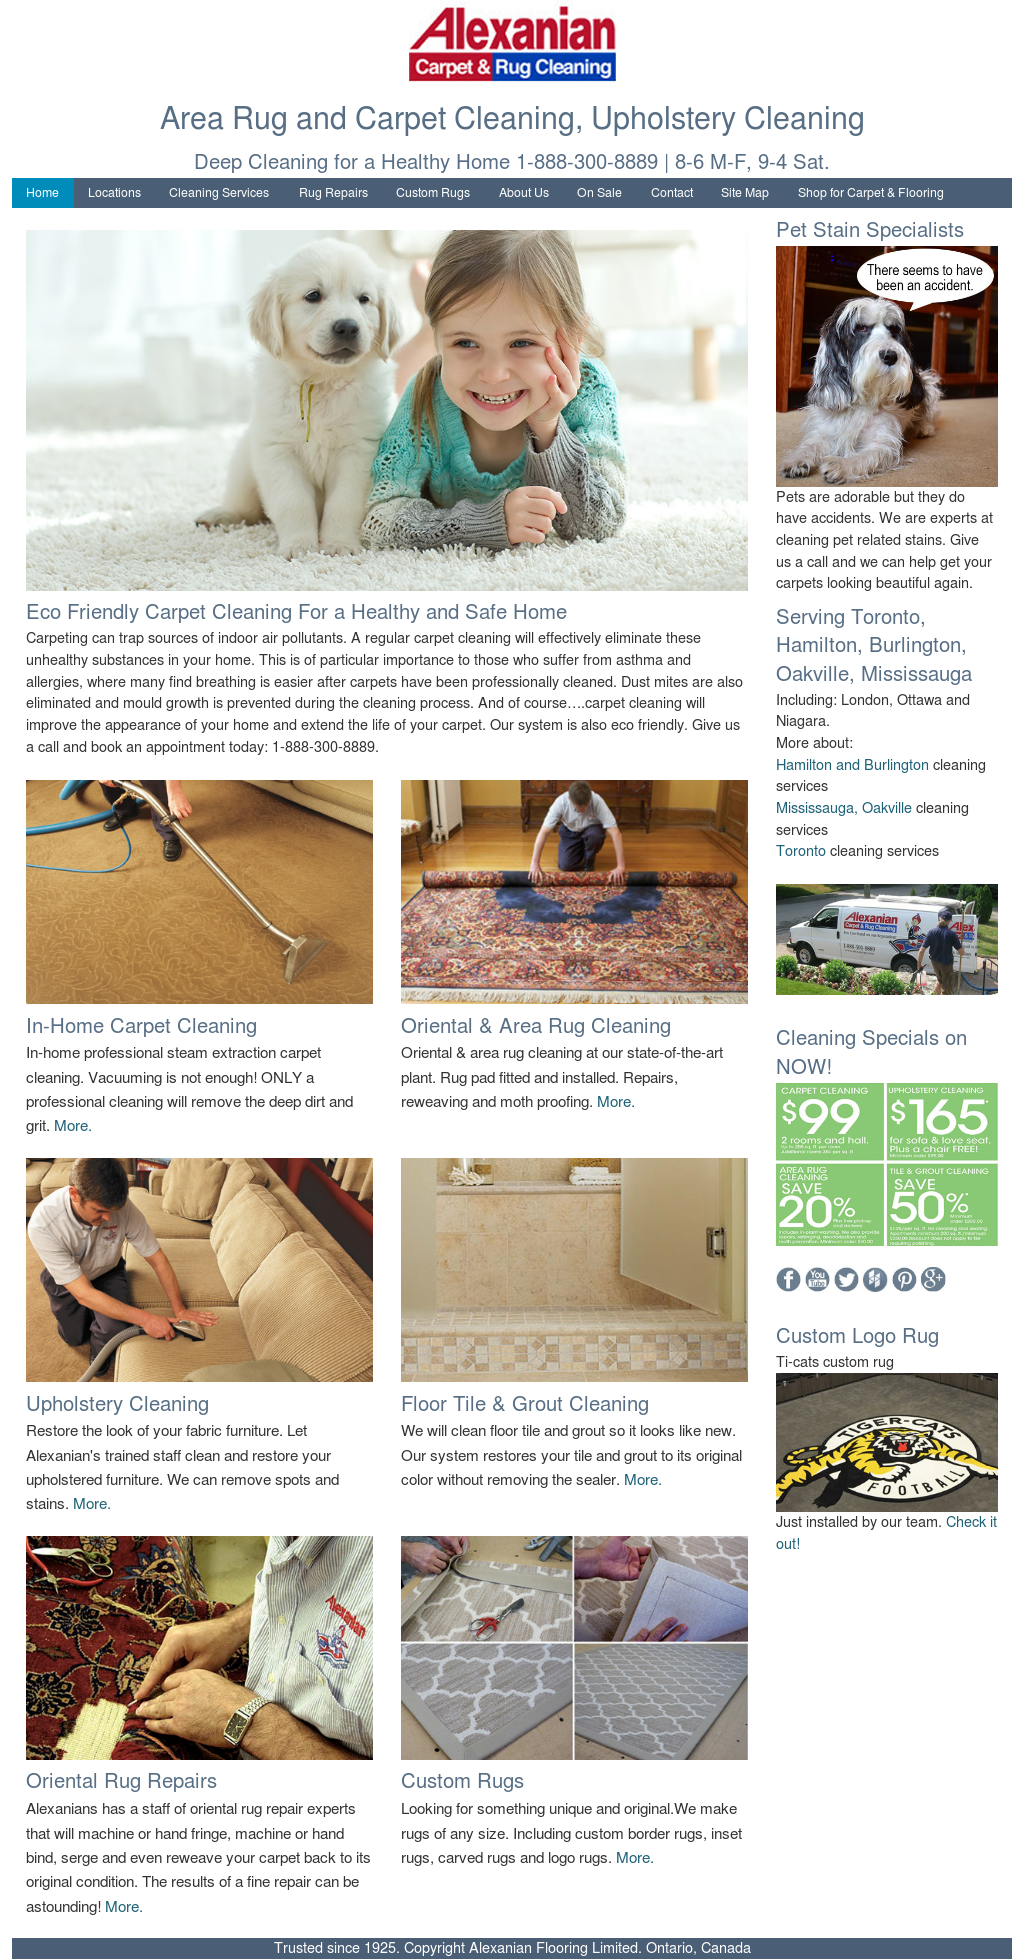 Alexanian Carpet Cleaning Competitors